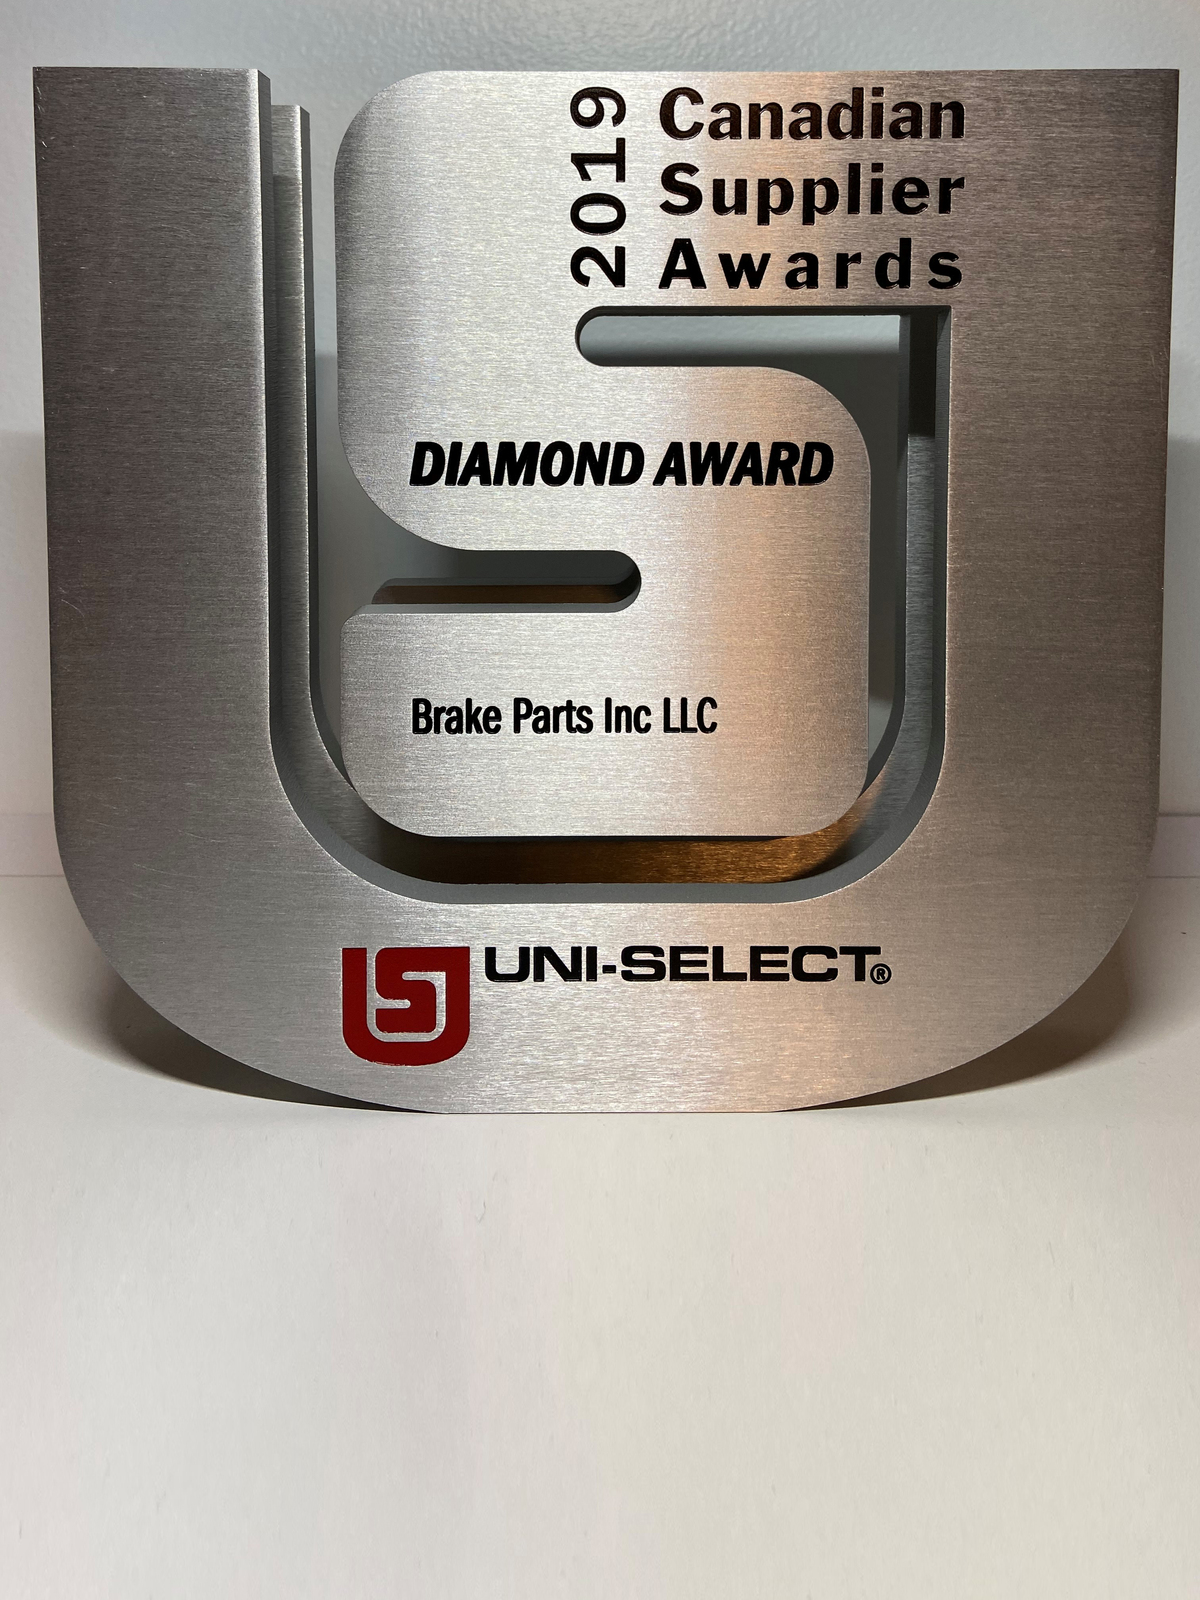 Brake Parts Inc Recognized by Uni-Select with the Diamond Award